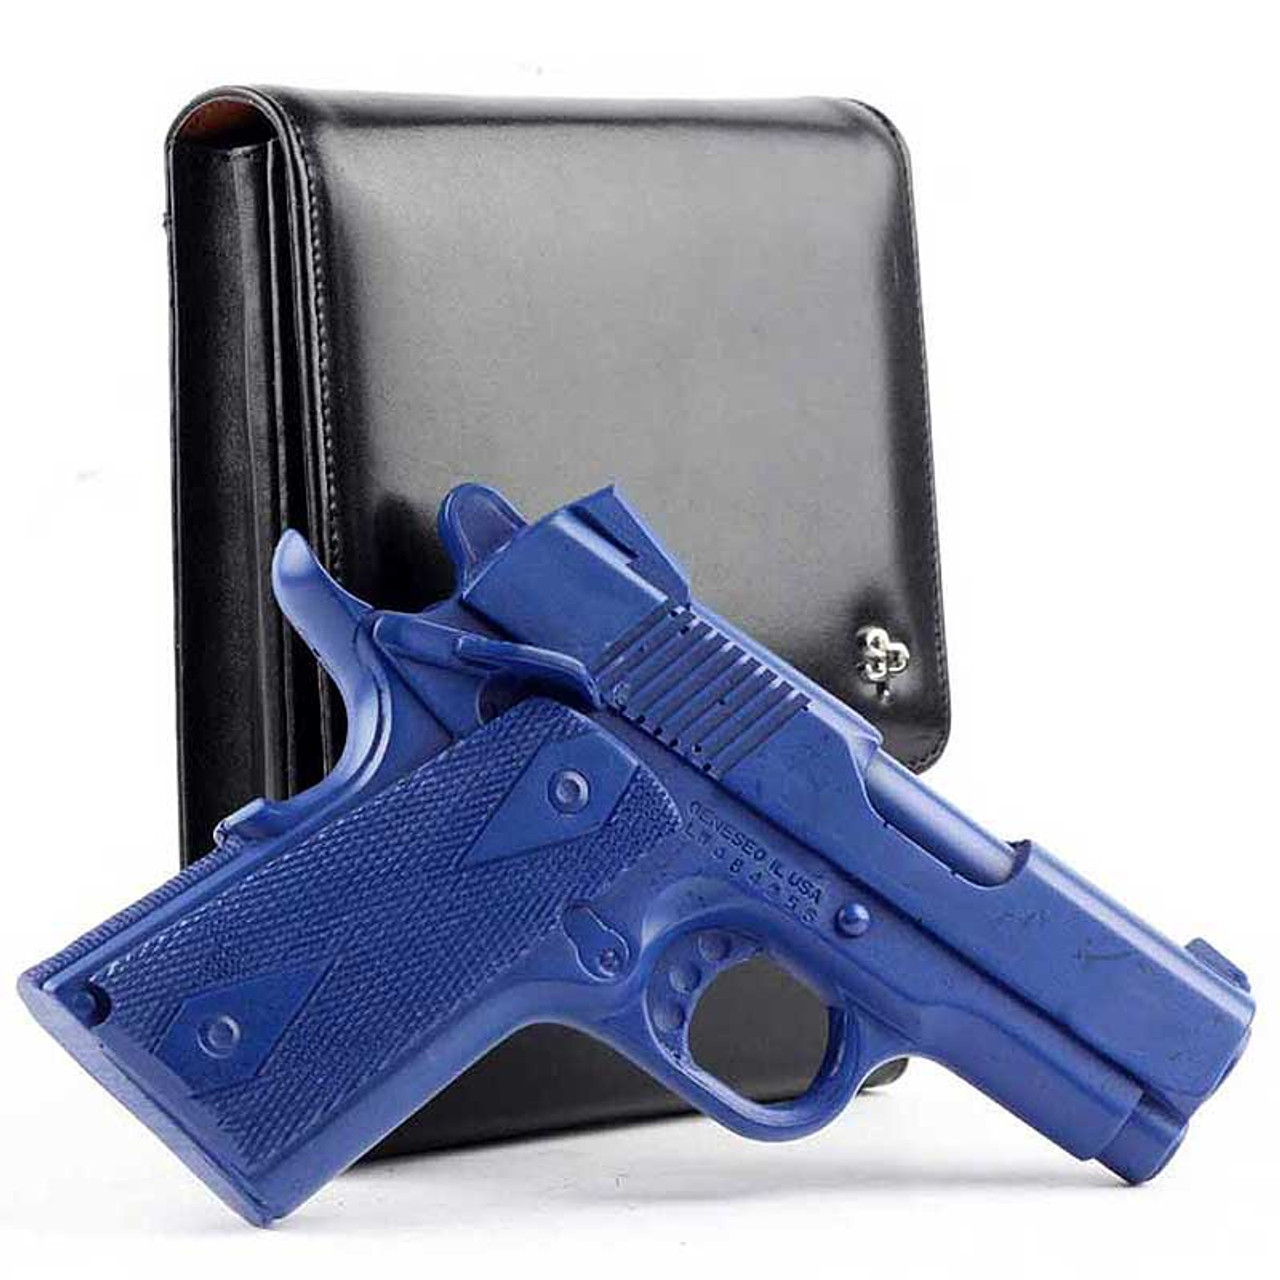 Kimber Ultra Carry II Sneaky Pete Holster